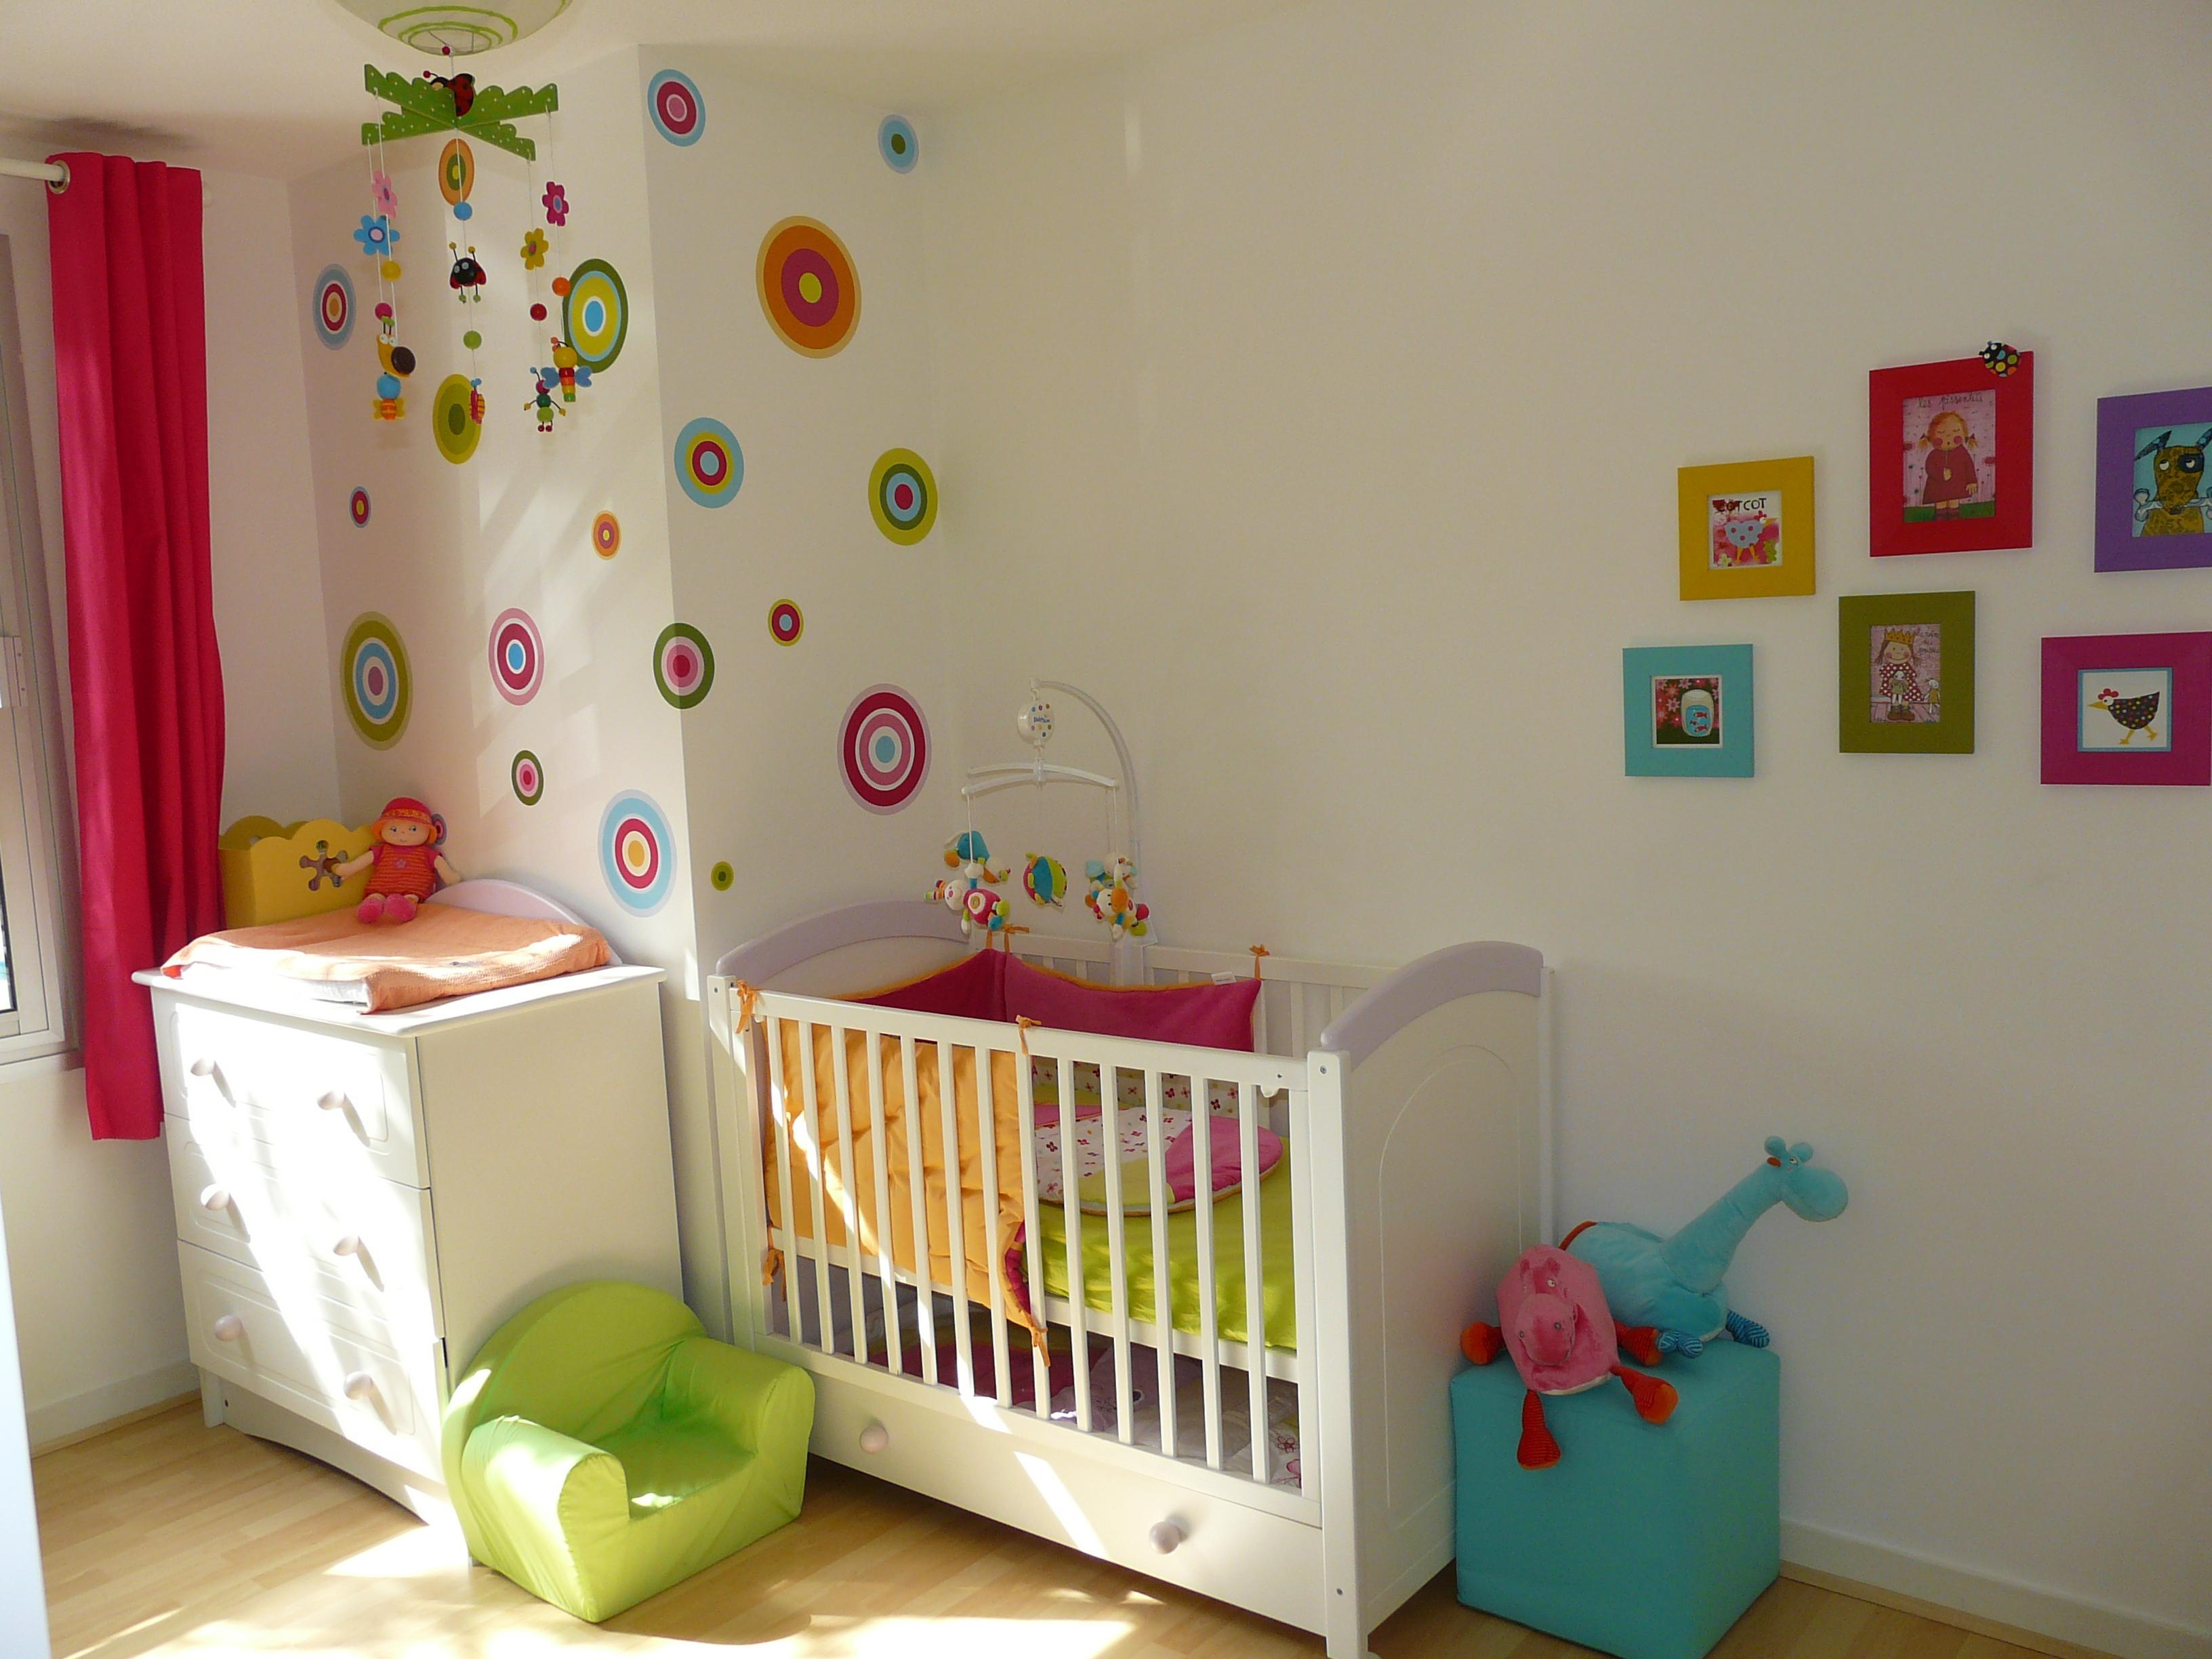 Photo decoration deco chambre bebe fille ikea - Chambre bebe garcon ikea ...